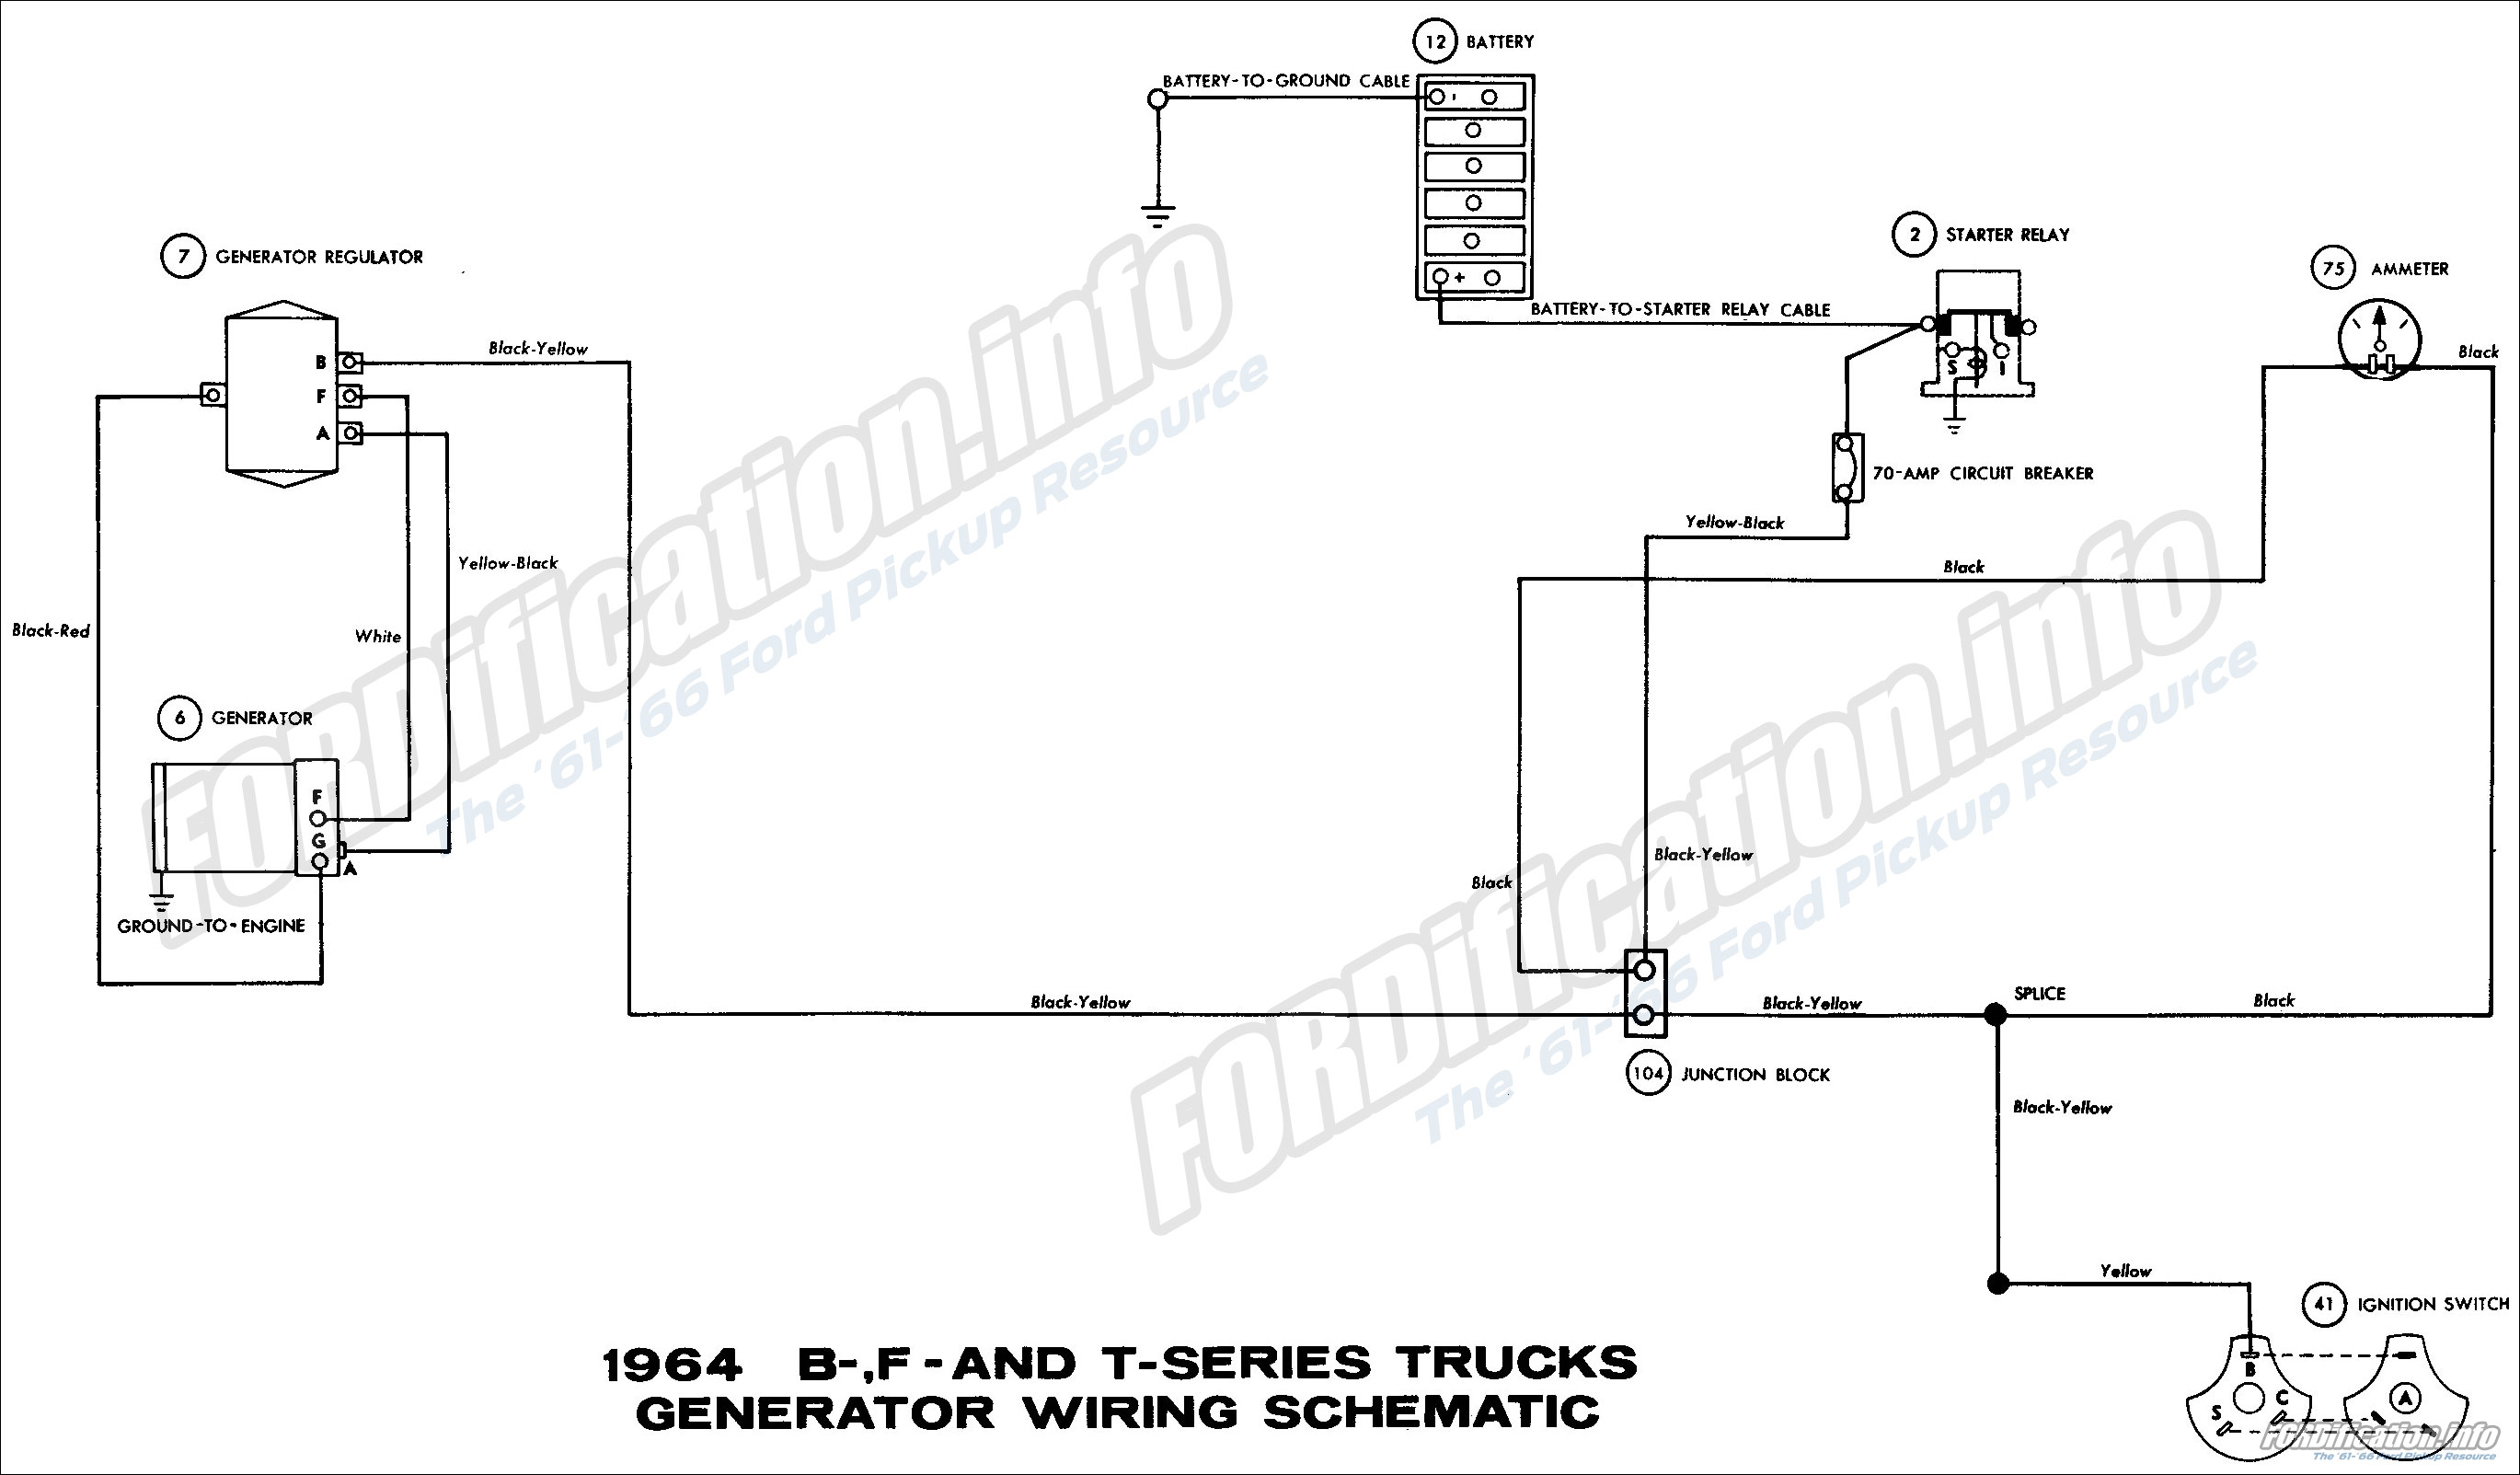 1964_07 1964 ford truck wiring diagrams fordification info the '61 '66 1965 ford truck wiring diagram at panicattacktreatment.co